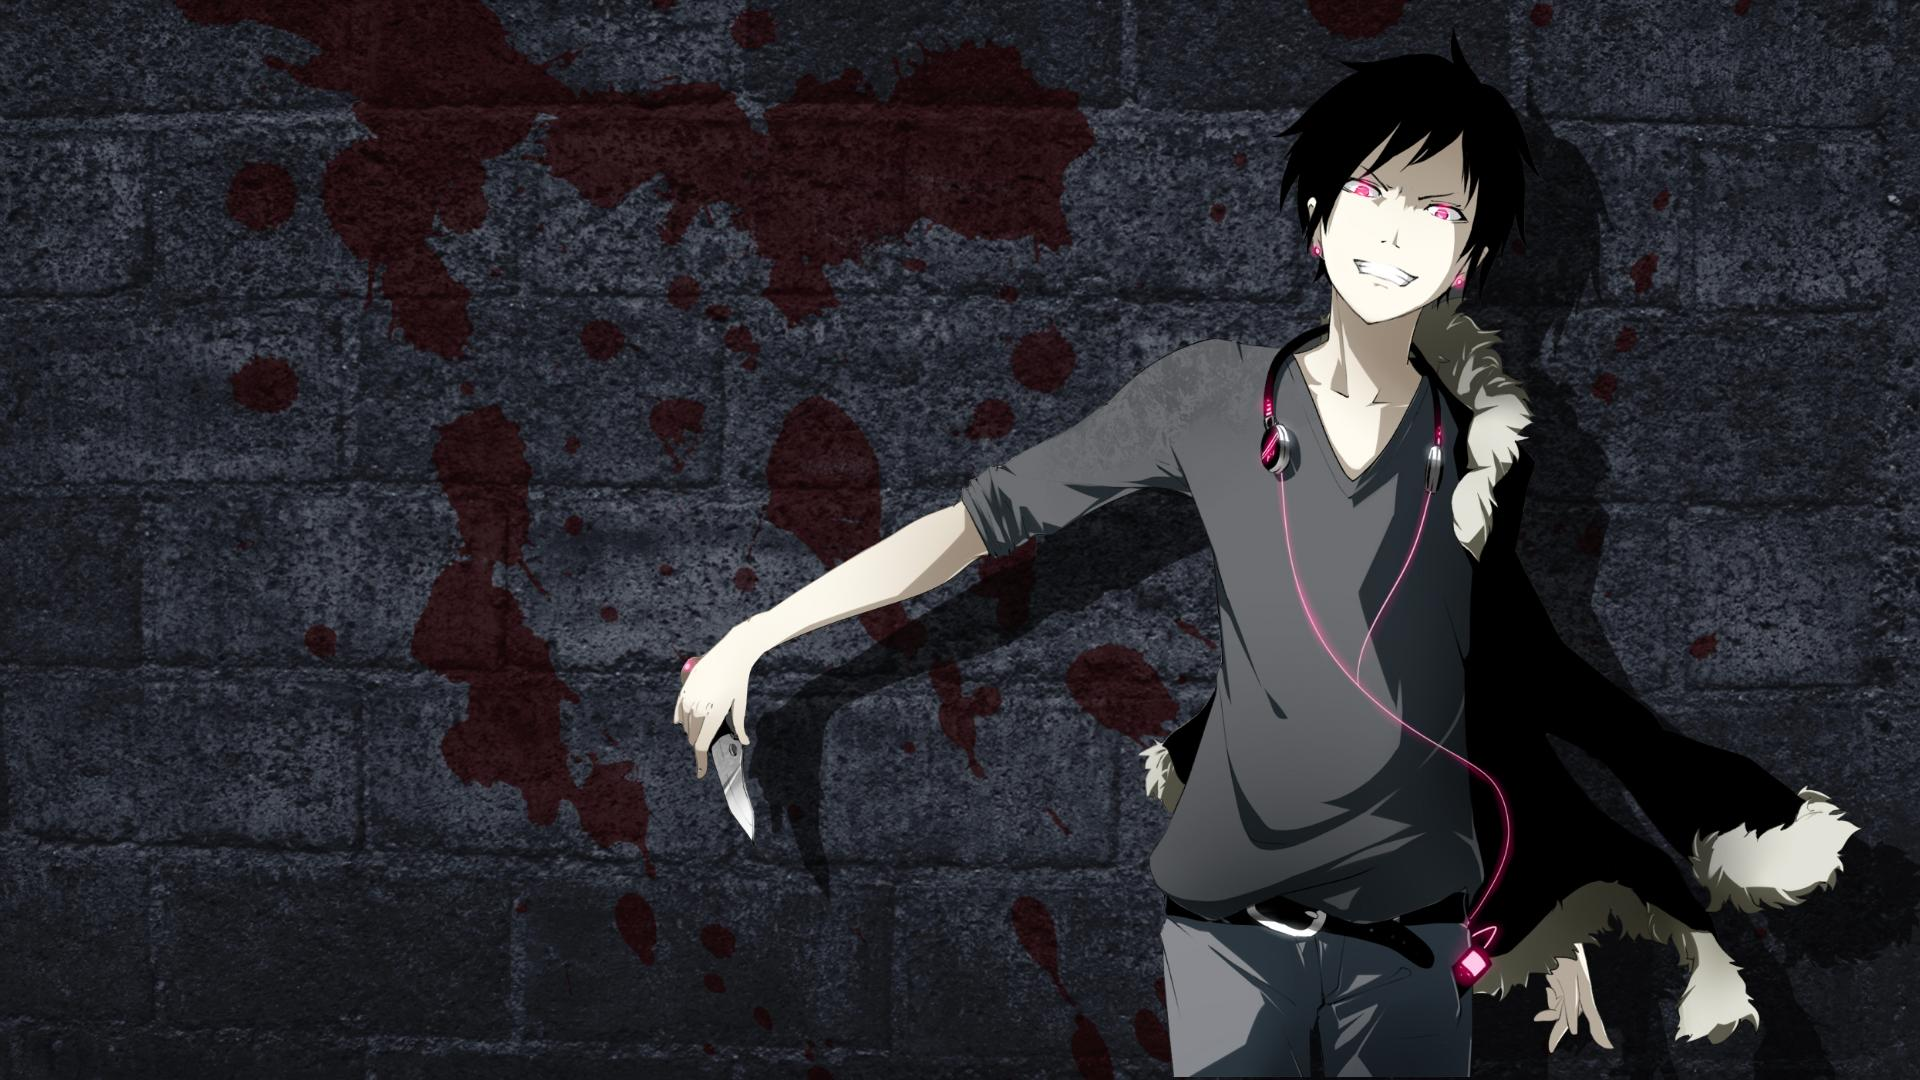 izaya orihara hd wallpapers